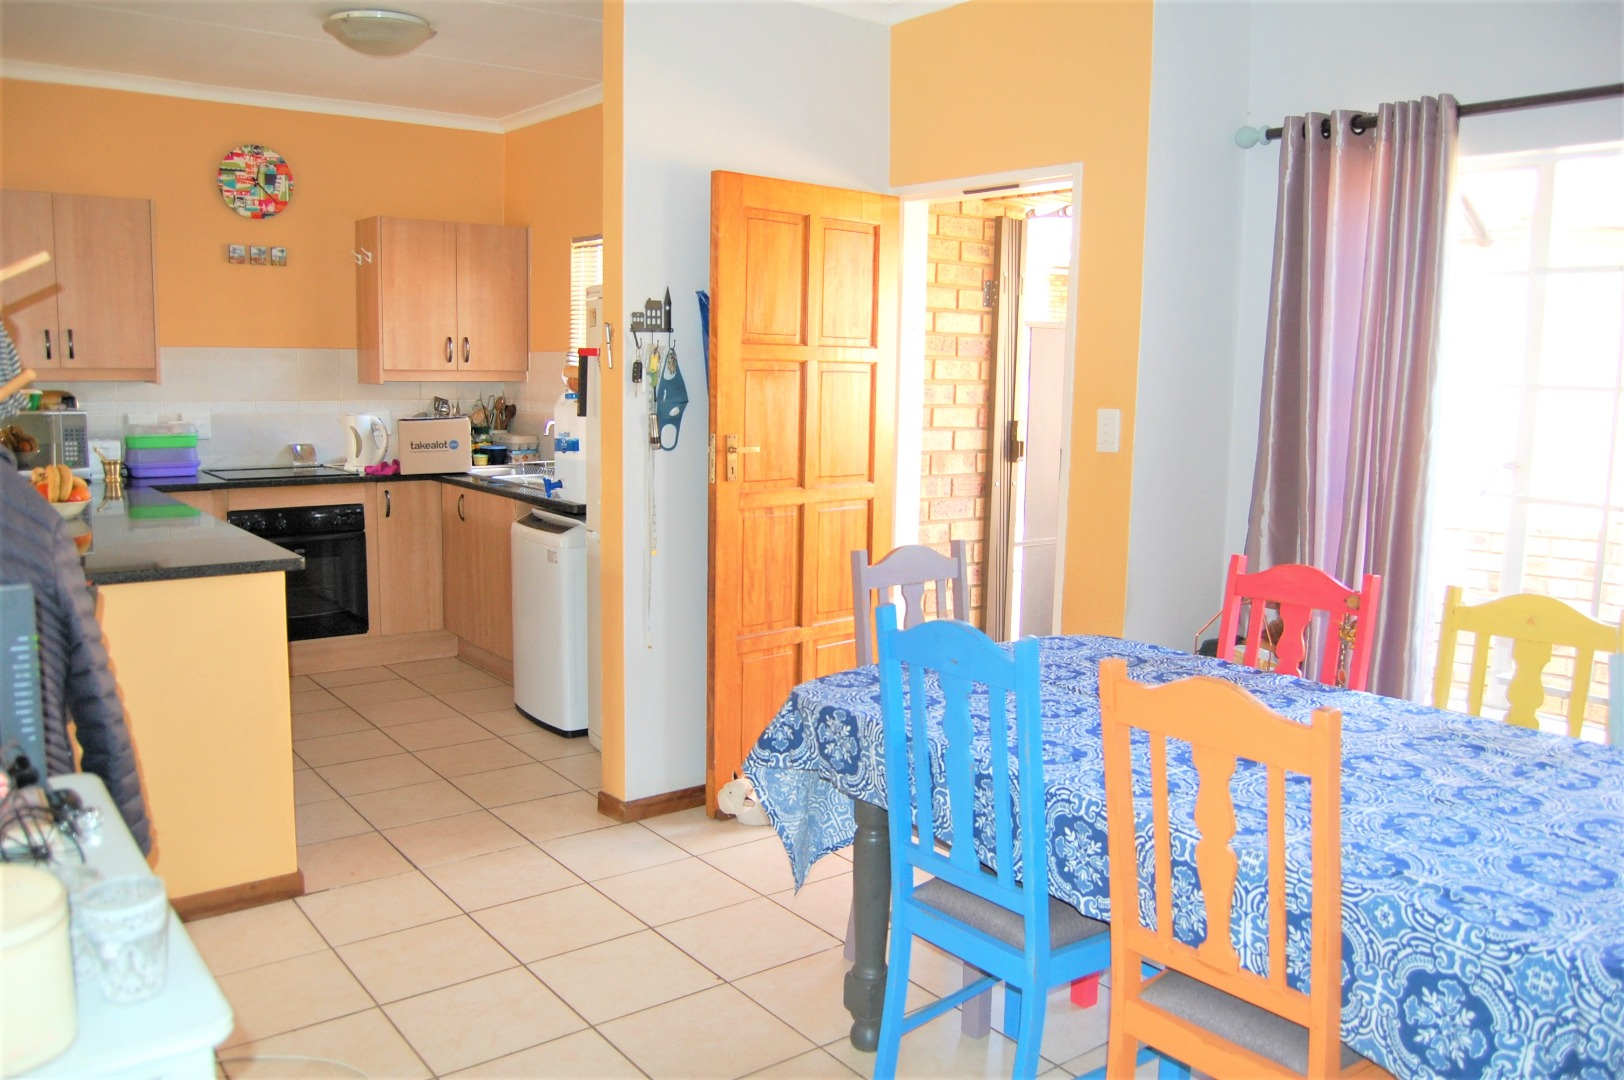 2 Bedroom Townhouse For Sale in The Reeds